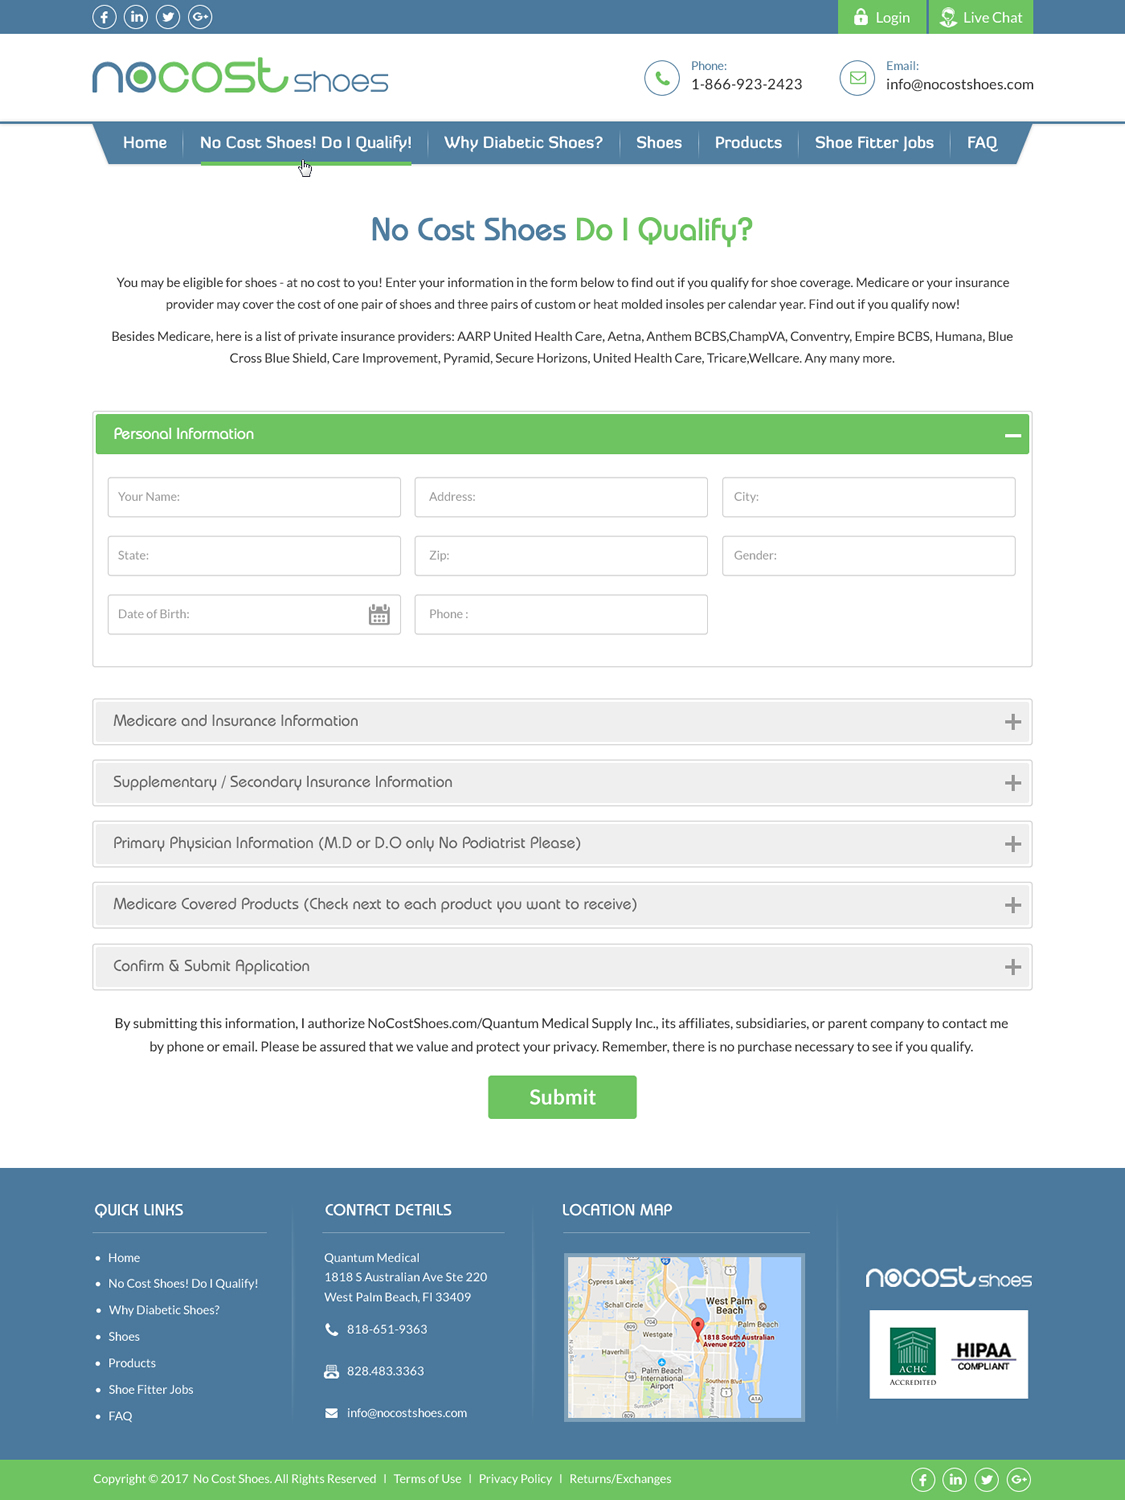 Professional, Serious, Healthcare Web Design for a Company by Sbss